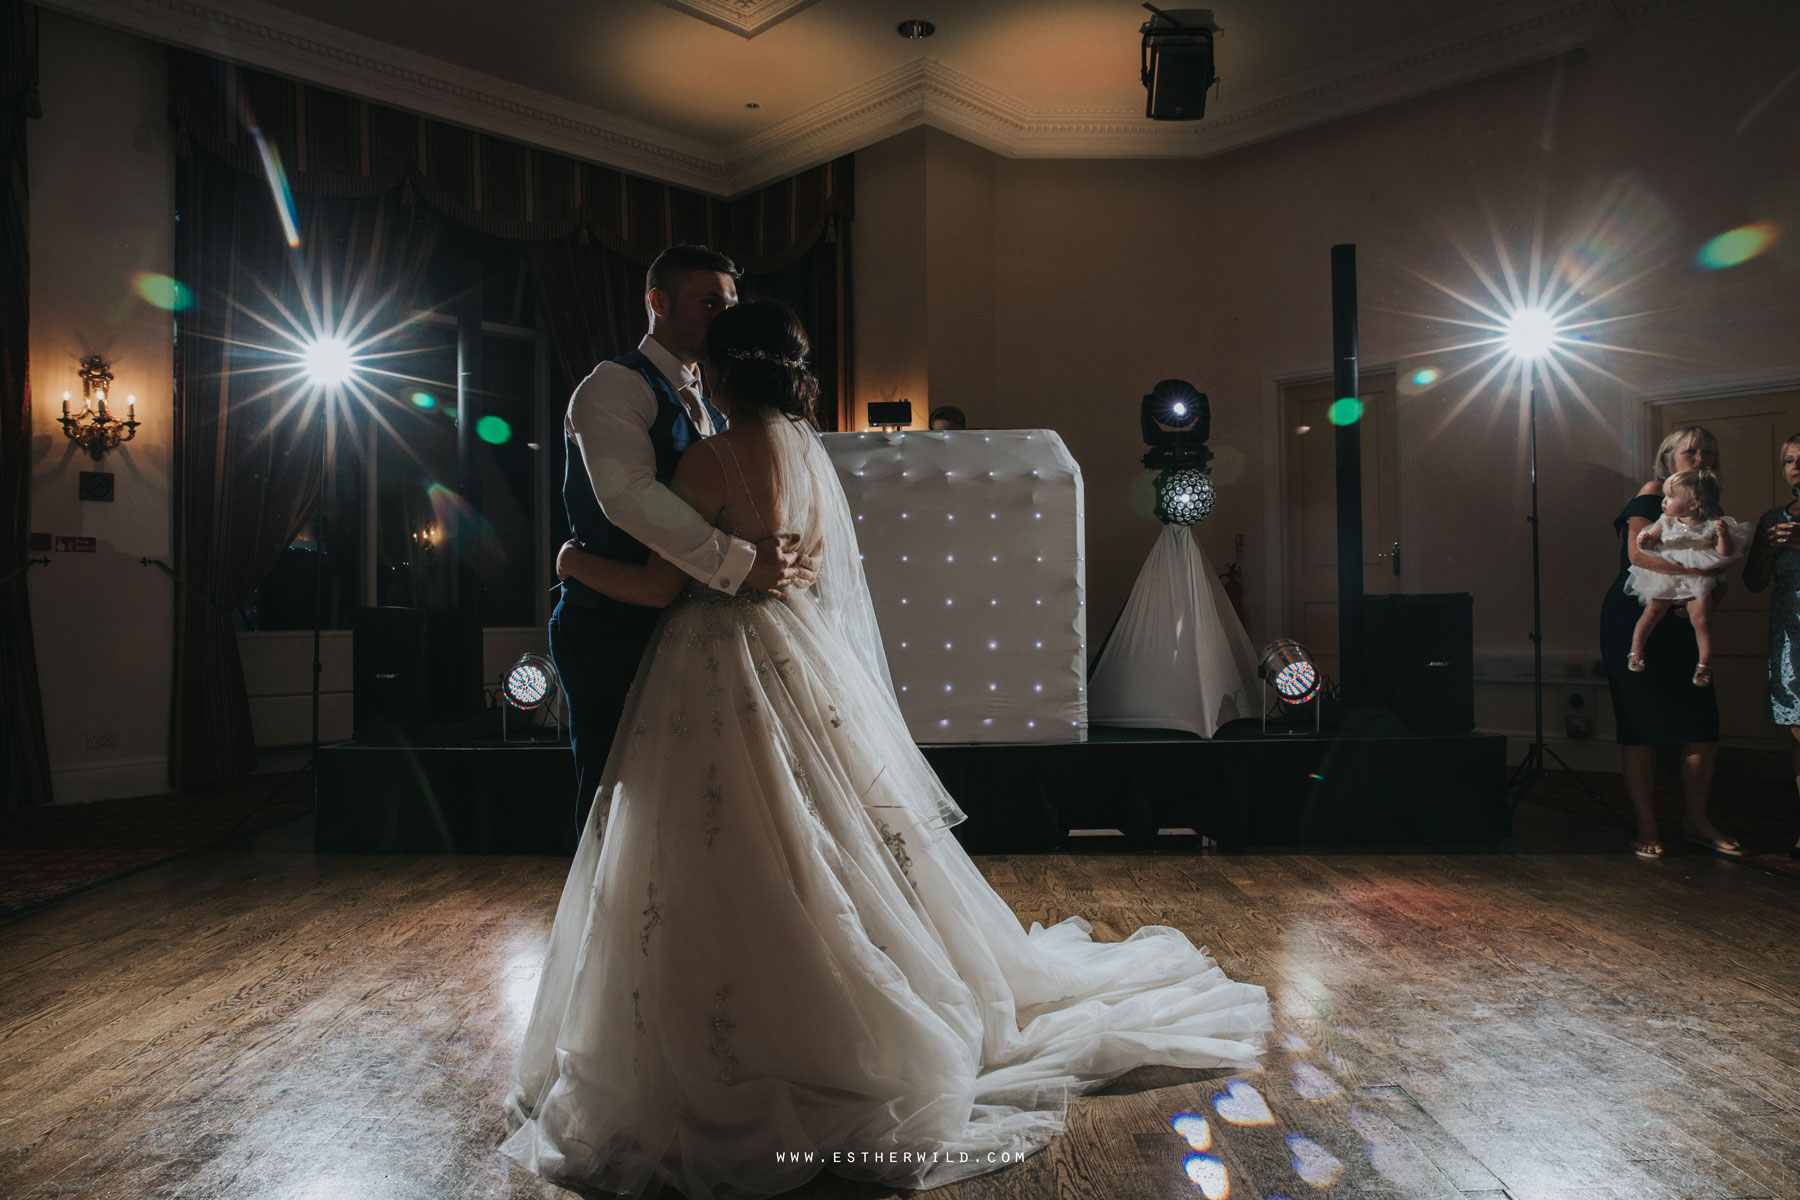 Lynford_Hall_Wedding_Thetford_Mundford_Esther_Wild_Photographer_IMG_3456.jpg